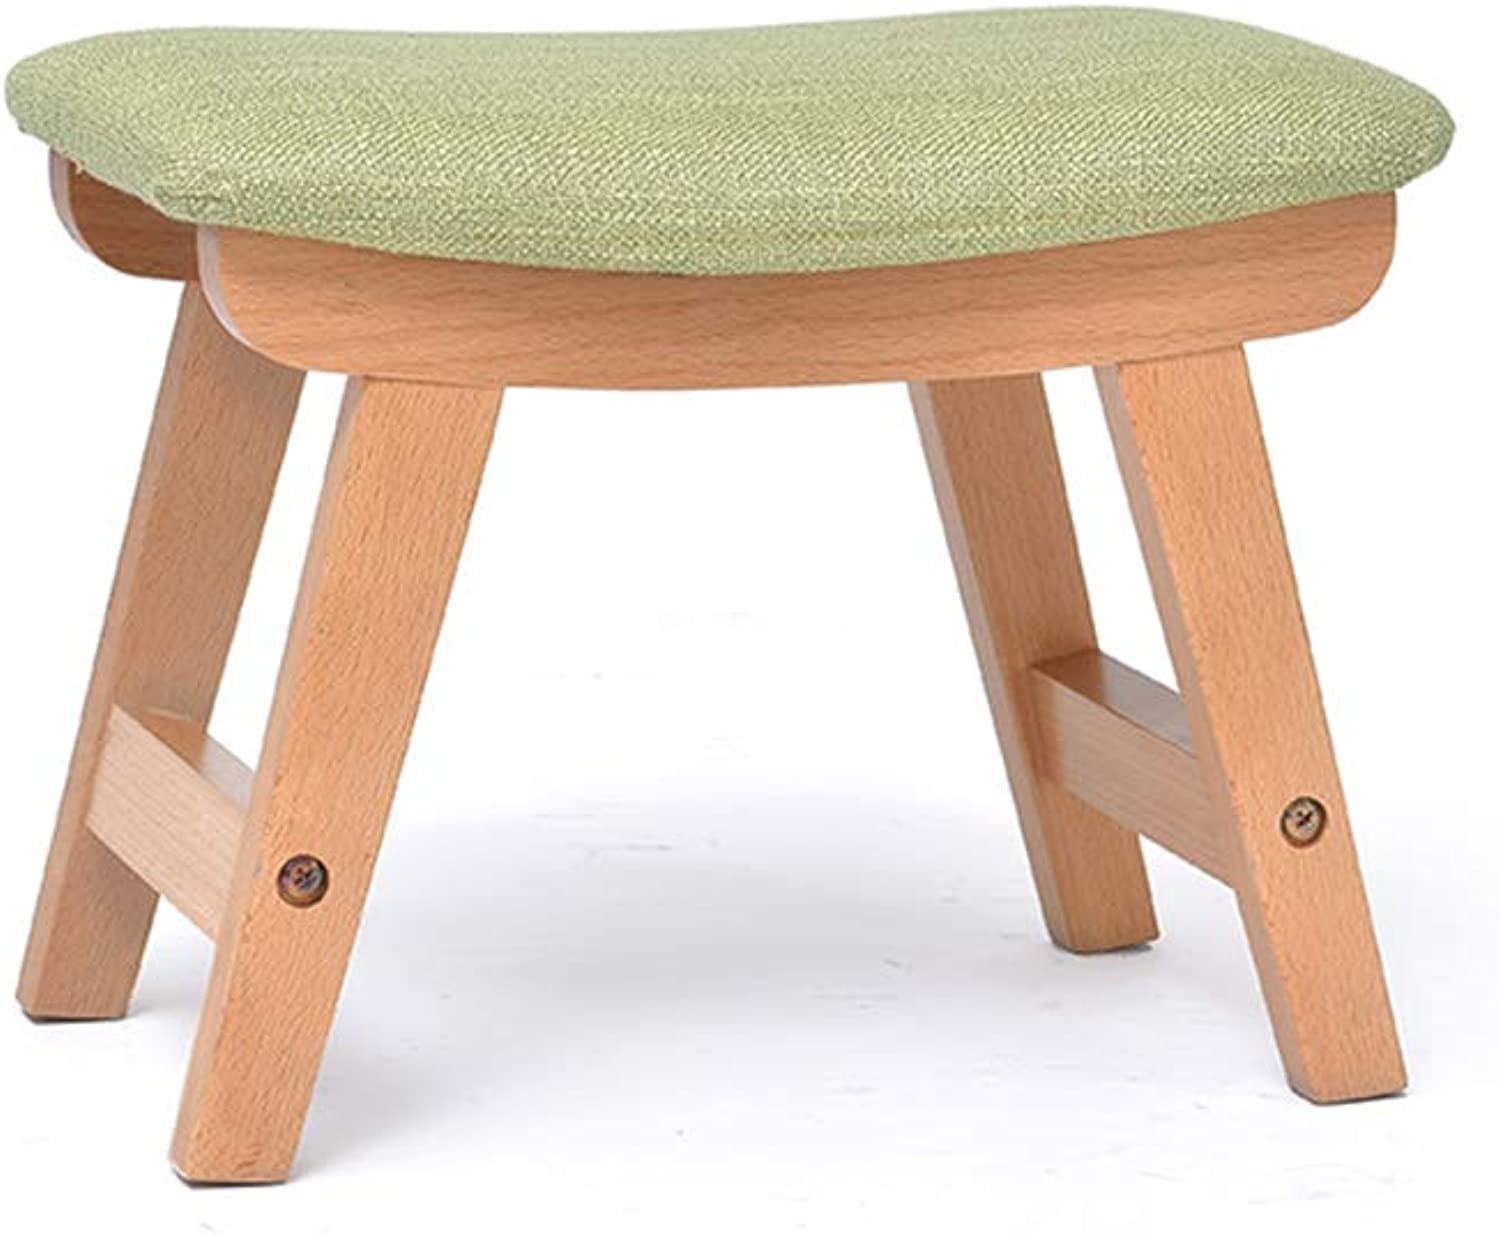 Solid Wood Small Bench Home Adult wear shoes stool Sofa Fabric stool